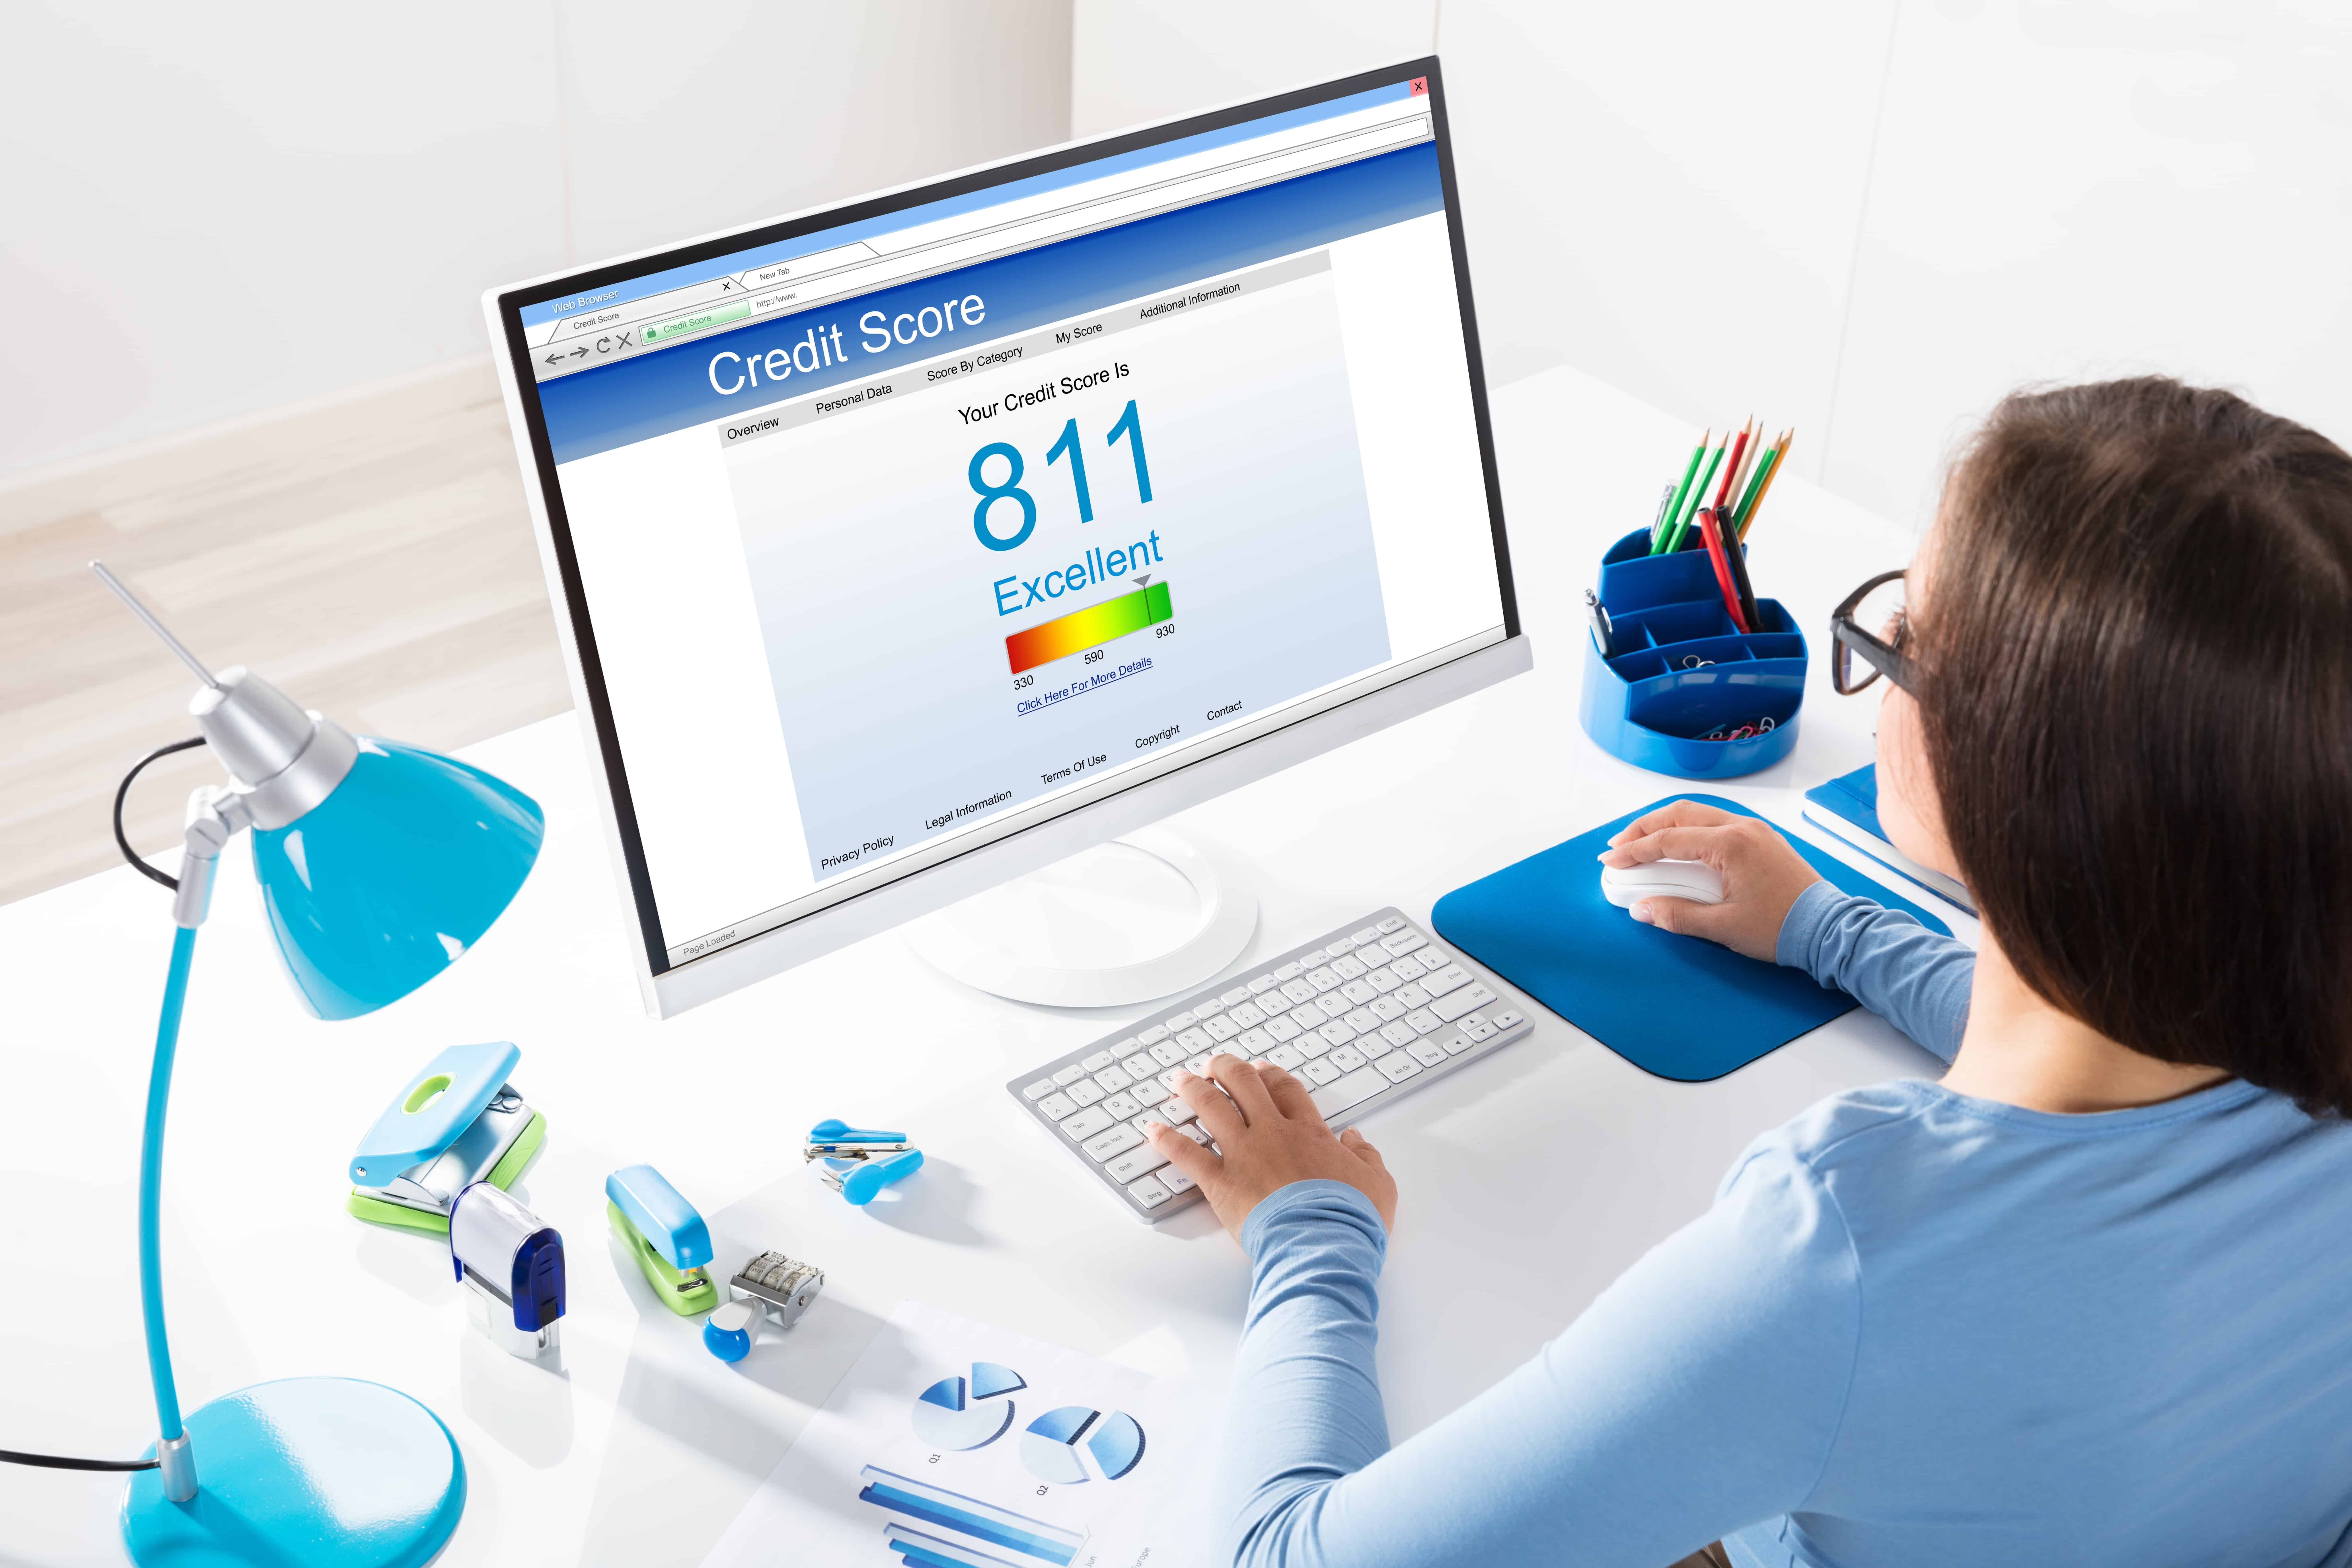 How to increase your credit score fast